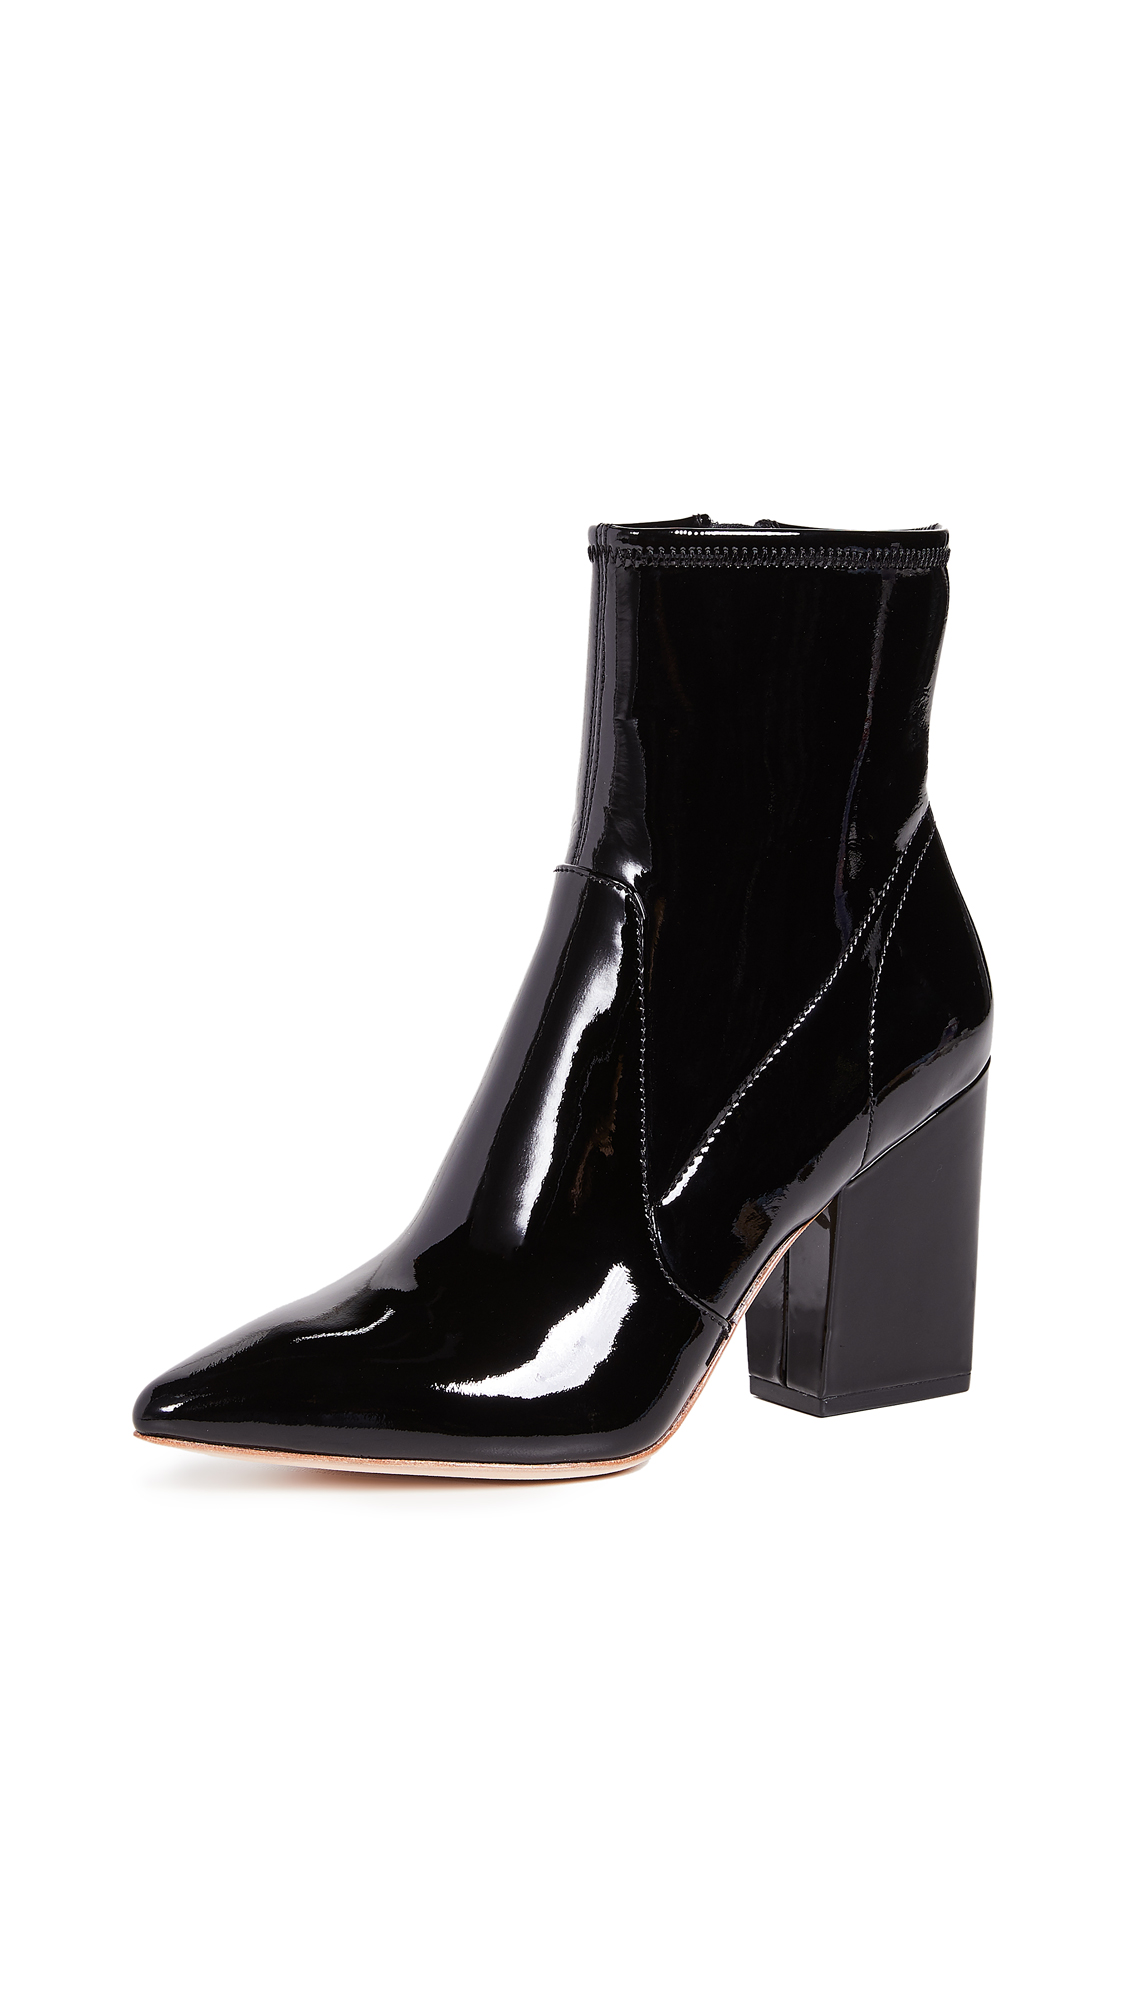 Loeffler Randall Isla Booties In Black